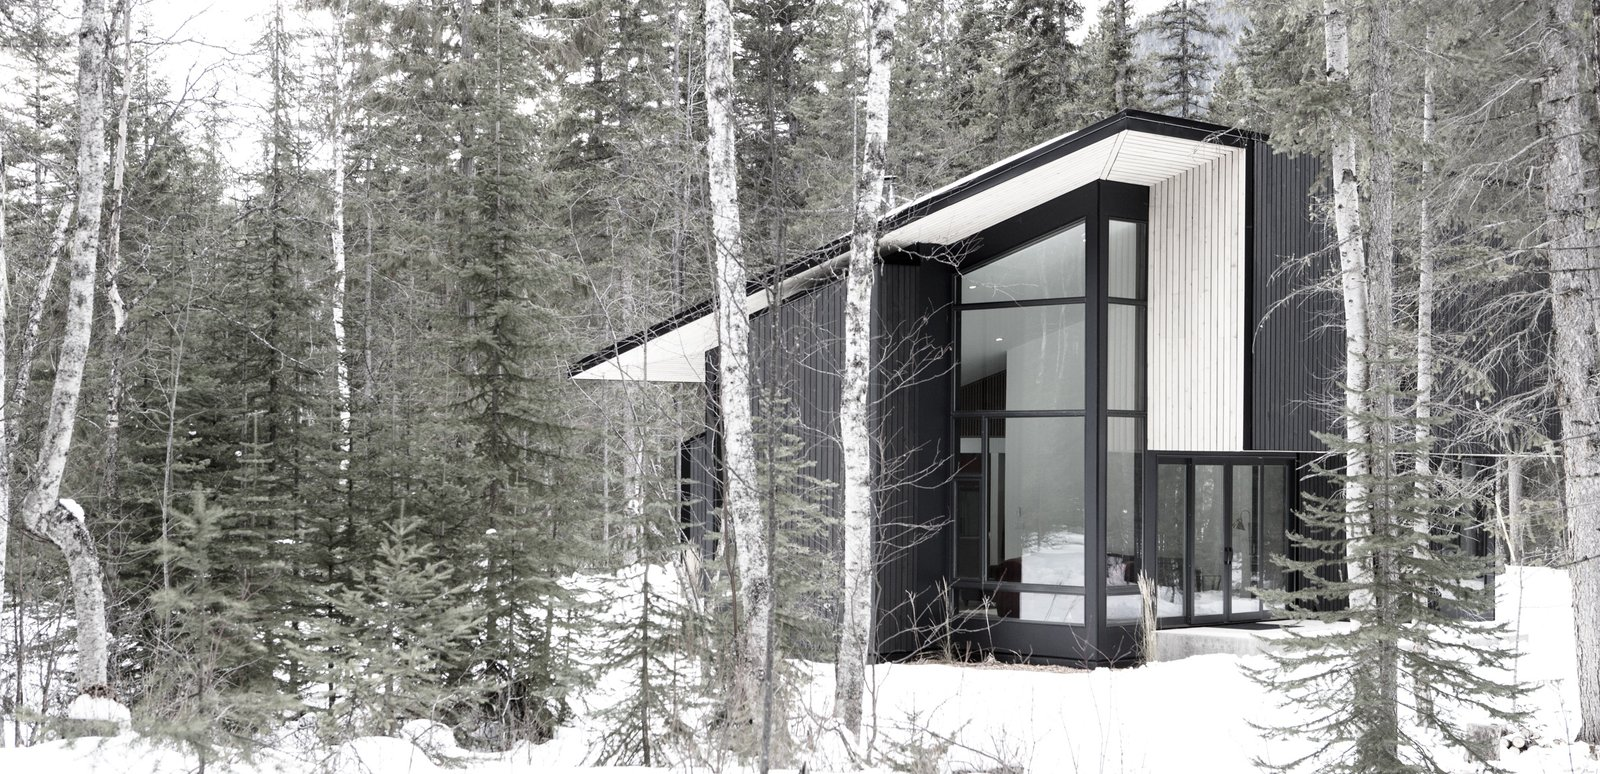 Exterior, Wood Siding Material, Cabin Building Type, Metal Roof Material, and Shed RoofLine  Pioneer Cabin